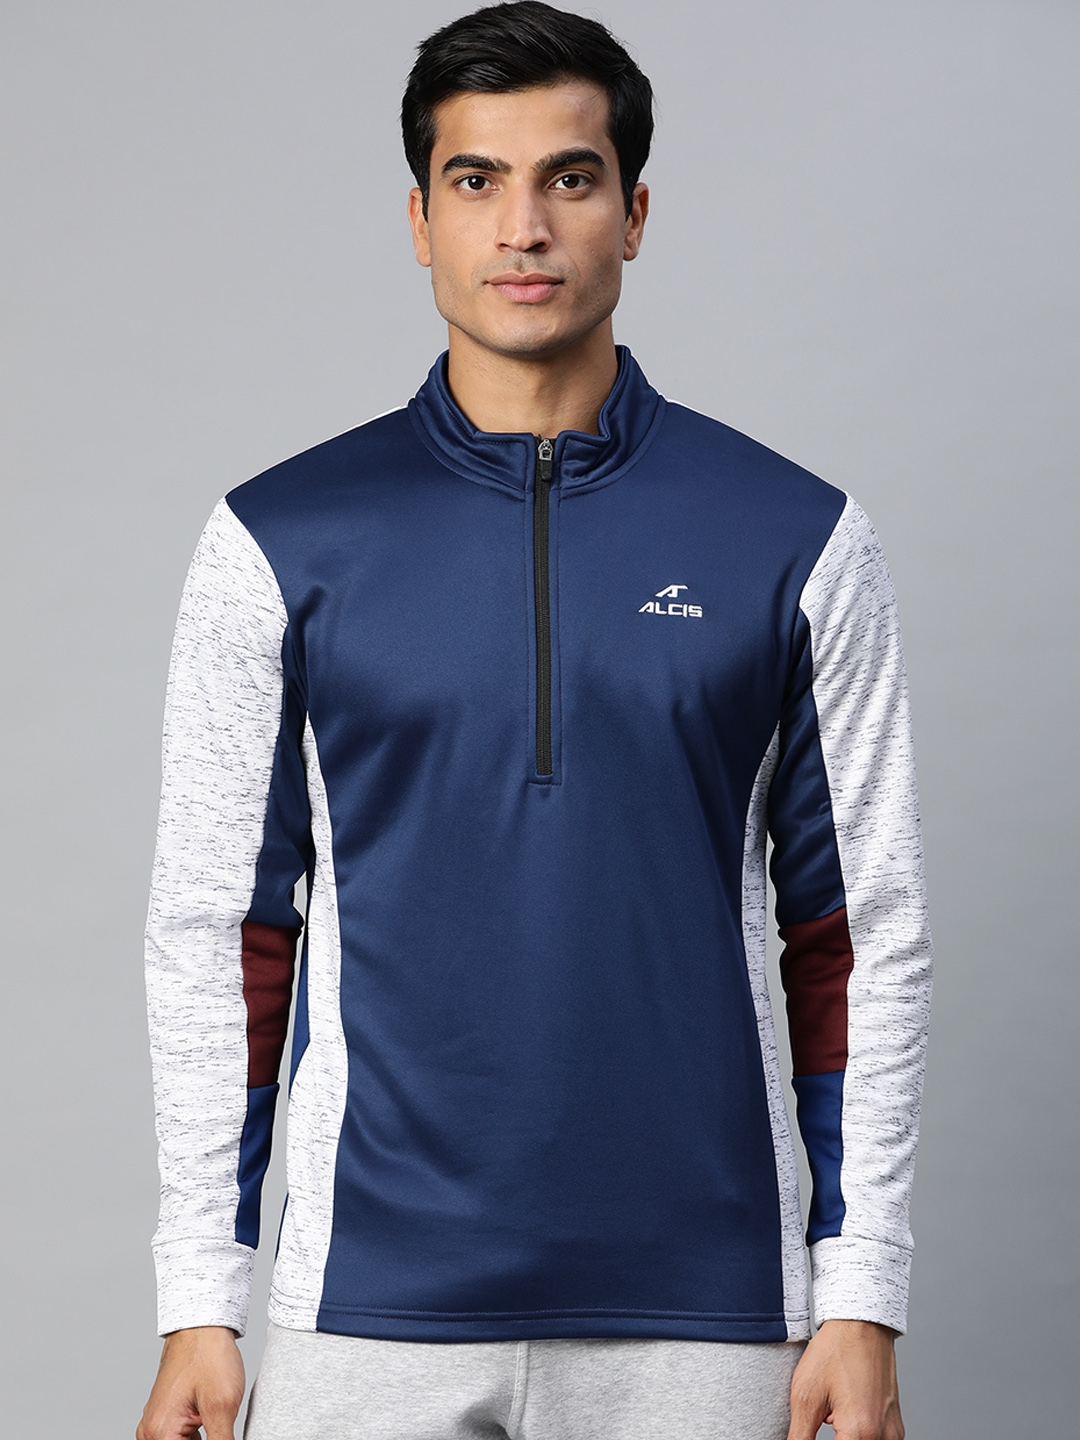 Alcis Men Navy Blue Solid Pullover Sweatshirt With Contrast Sleeves